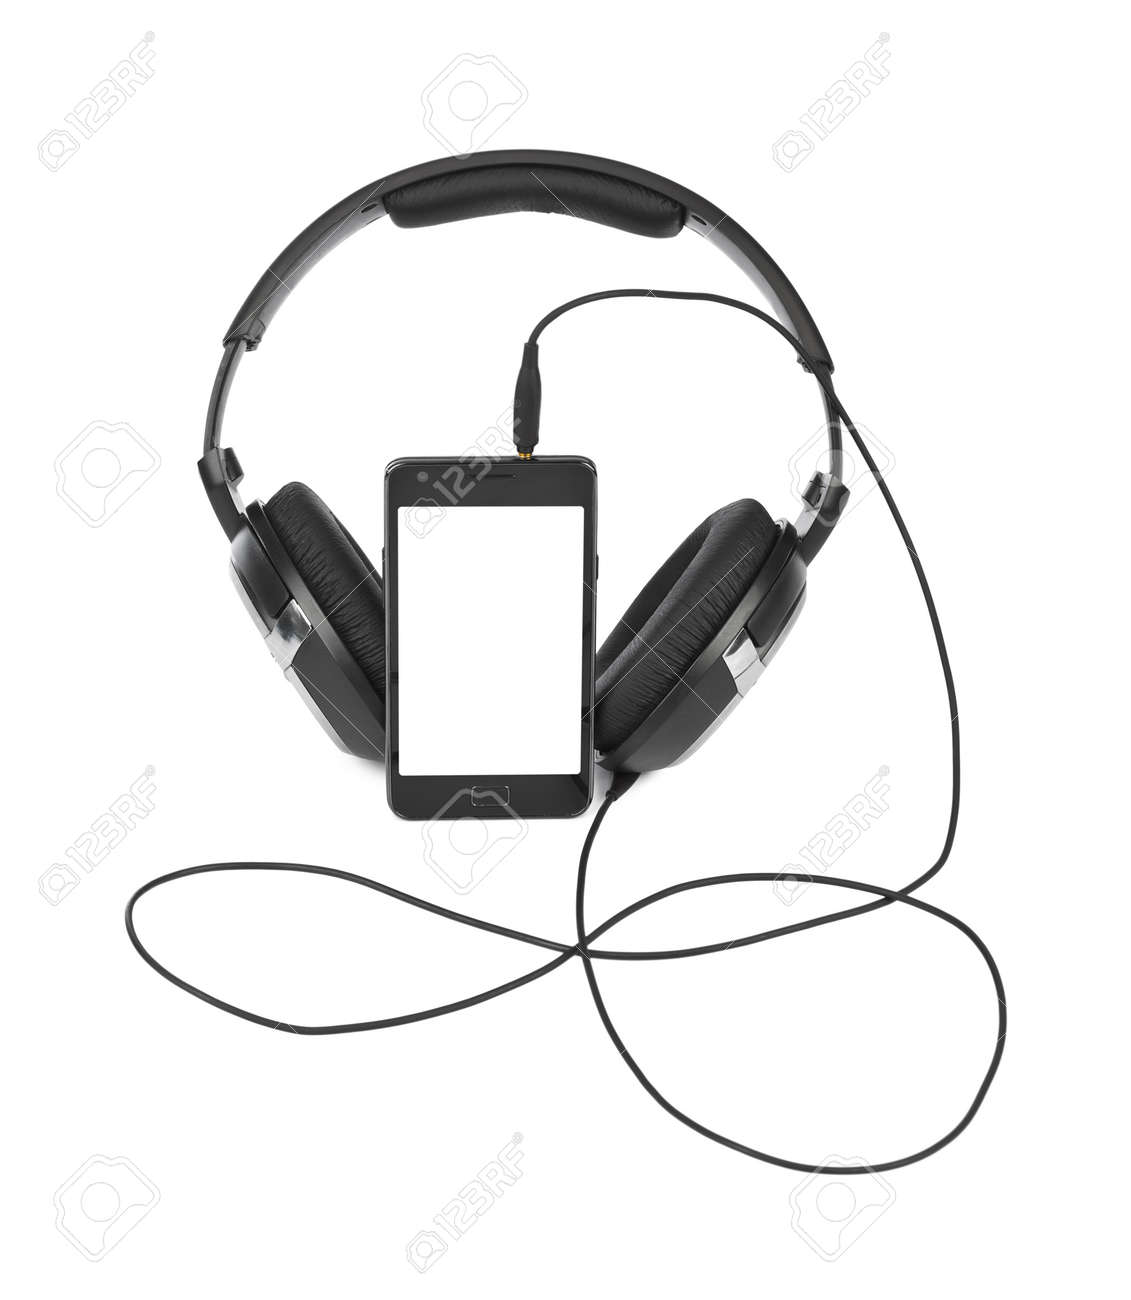 Mobile Phone And Headphones Isolated On White Background Stock Photo Picture And Royalty Free Image Image 48850534